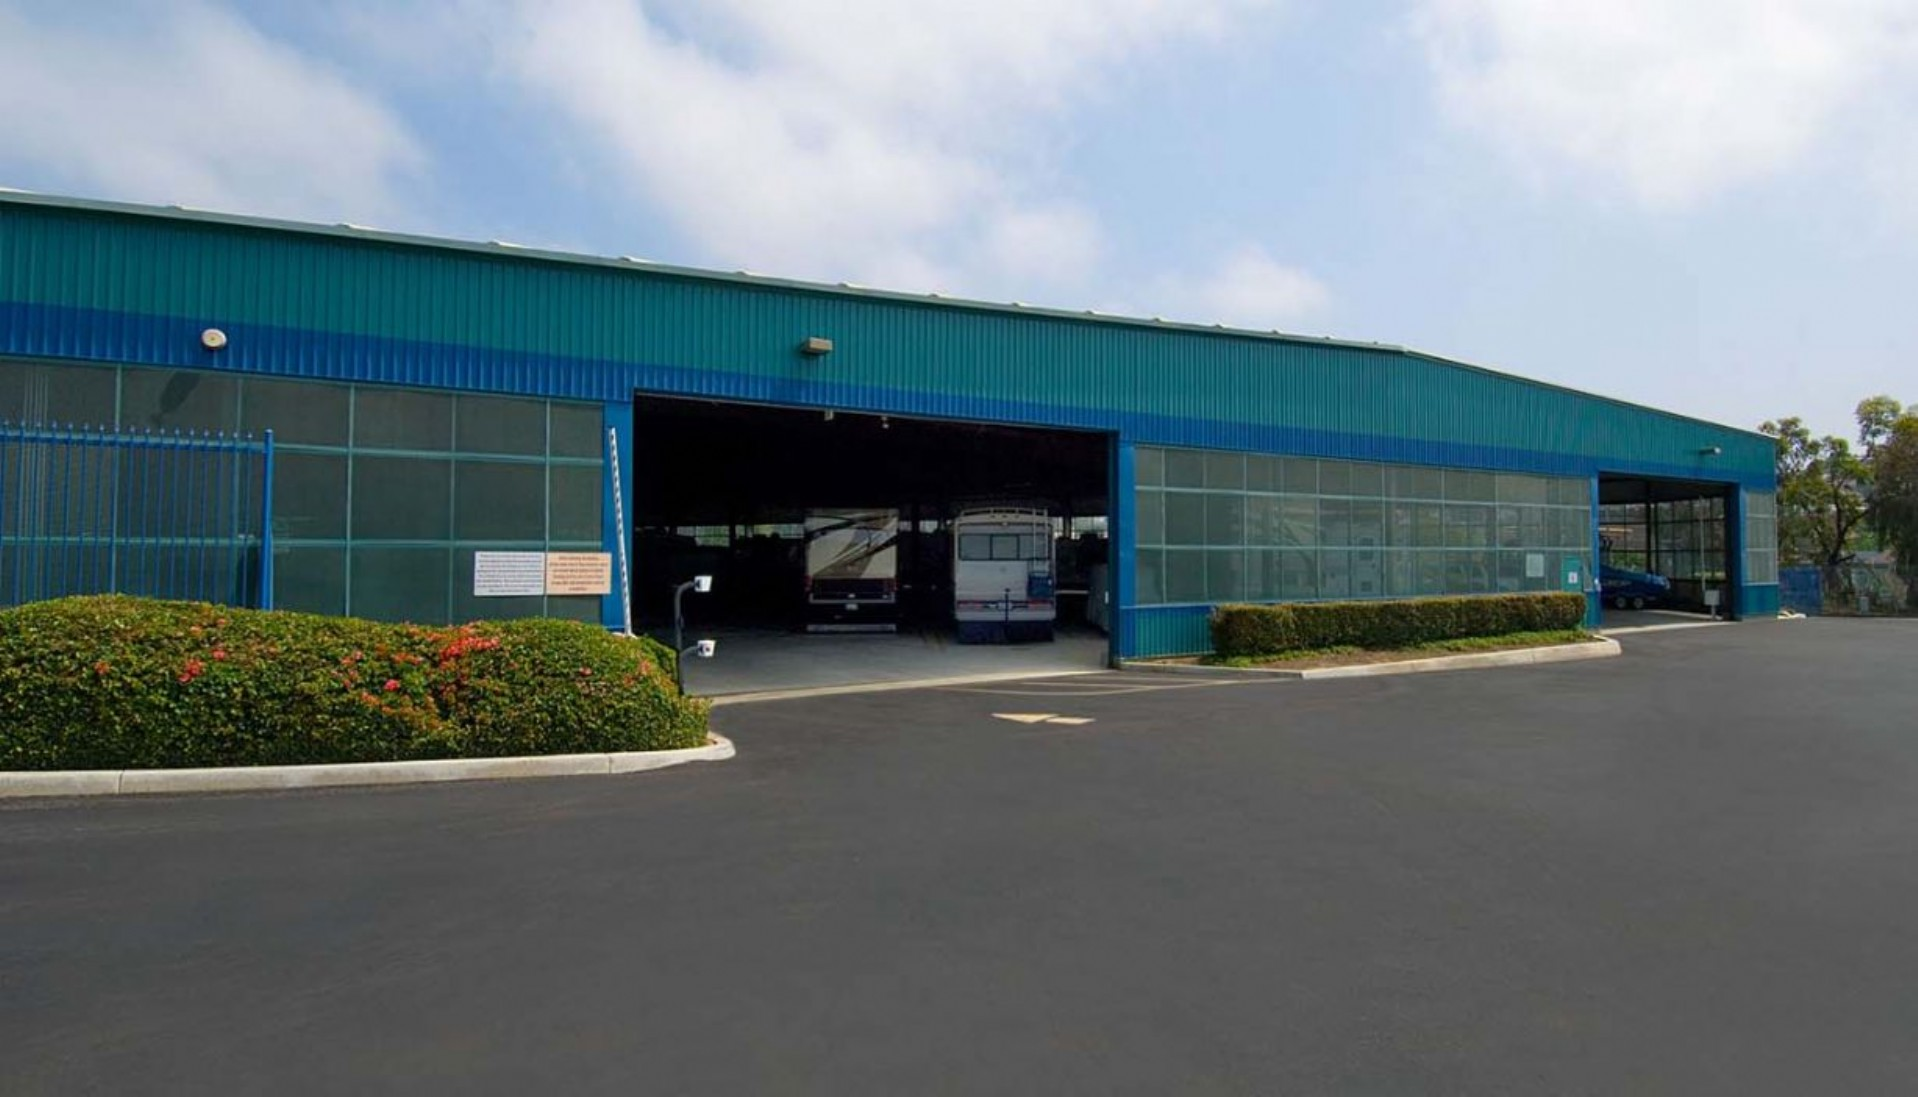 Main entrance to the 100,000 sq.ft. vehicle storage facility